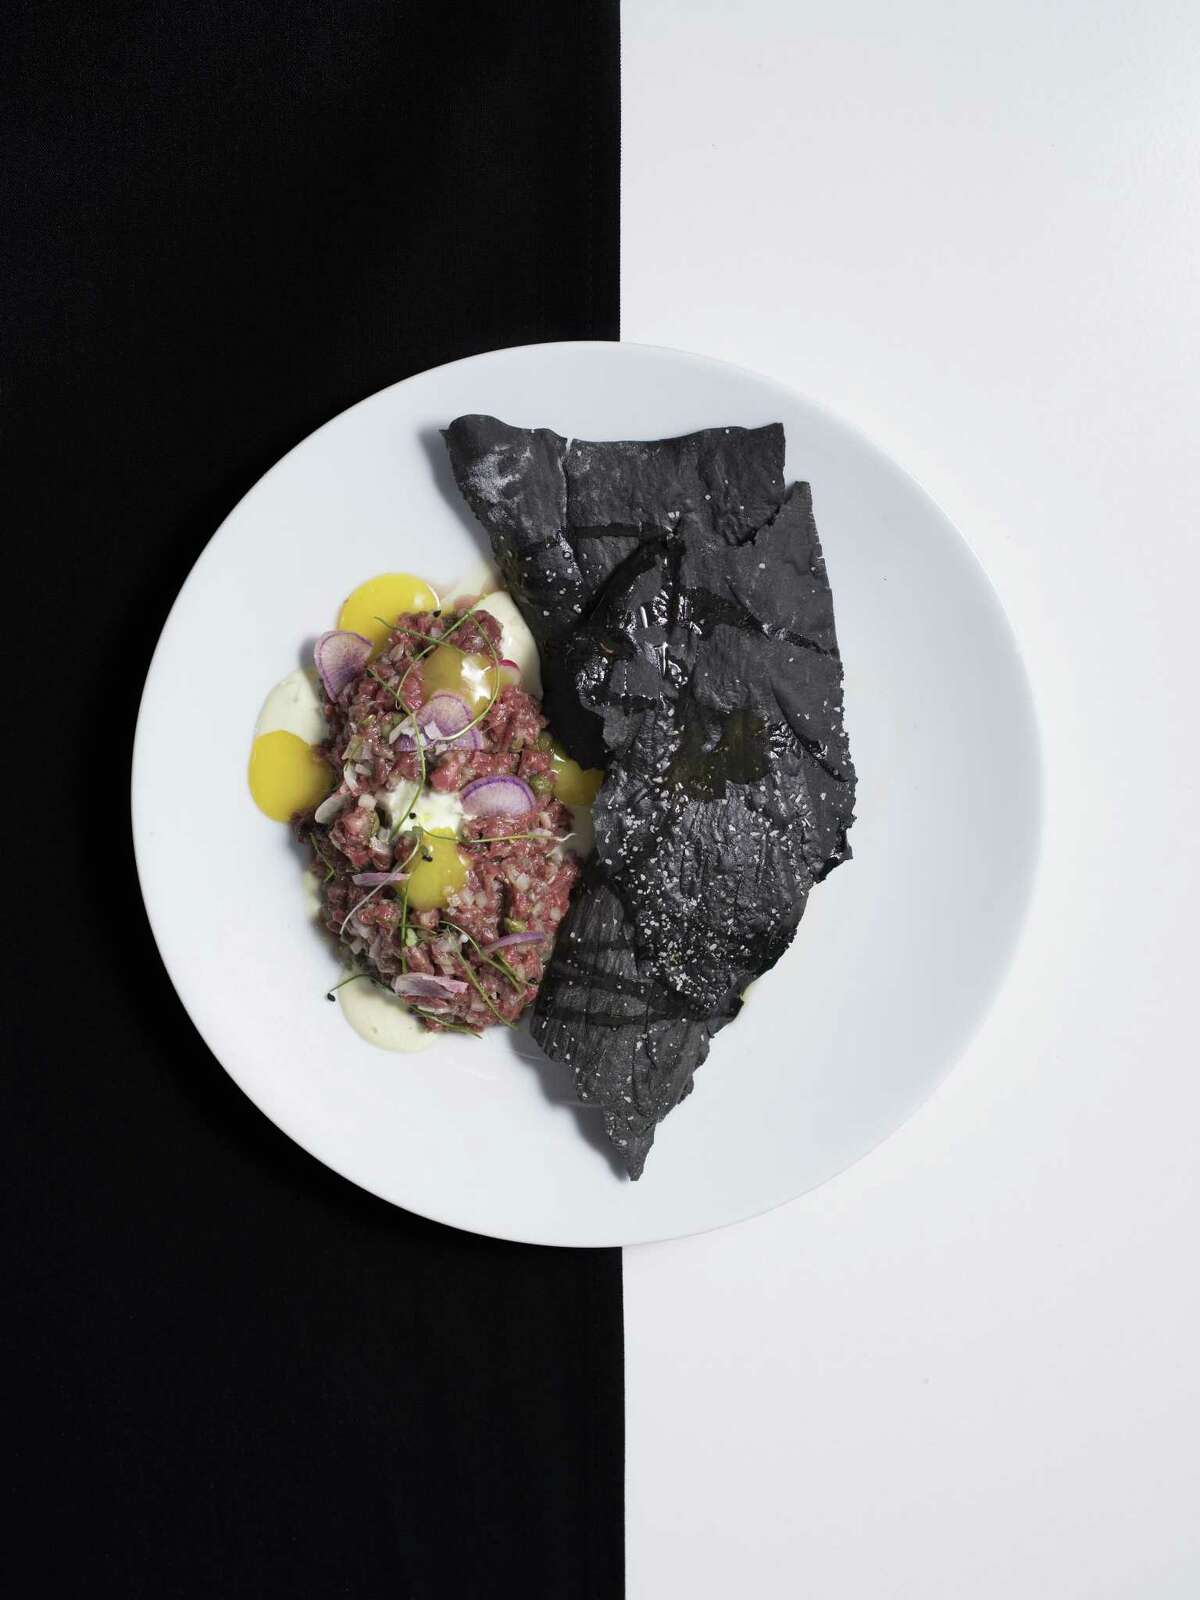 Wagyu tartare with a duck egg custard, garlic aioli and squid ink crackers at Feast.